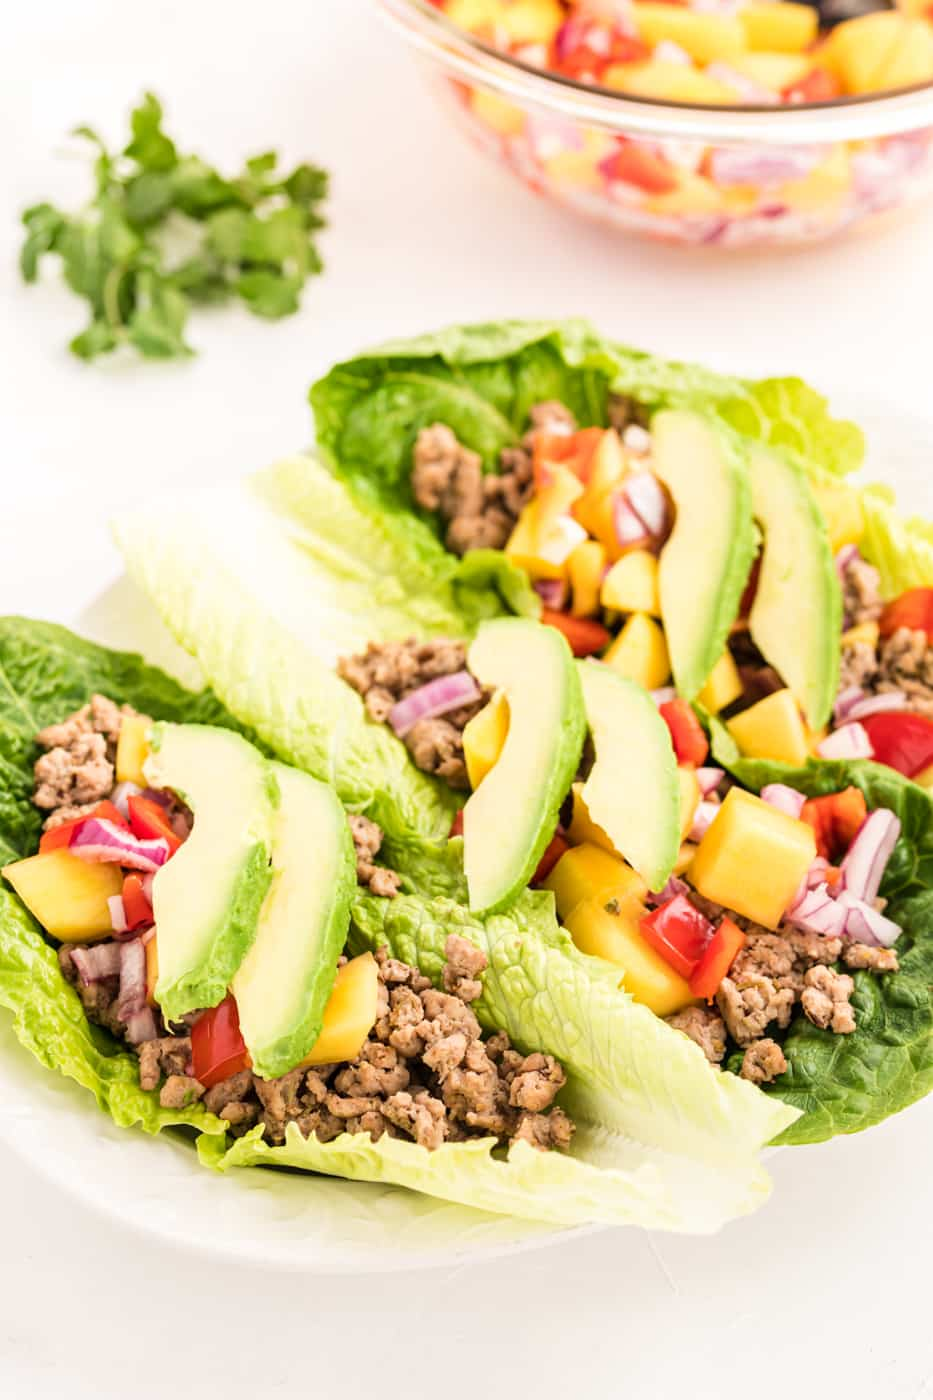 Ground chicken lettuce tacos with mango salsa and avocado